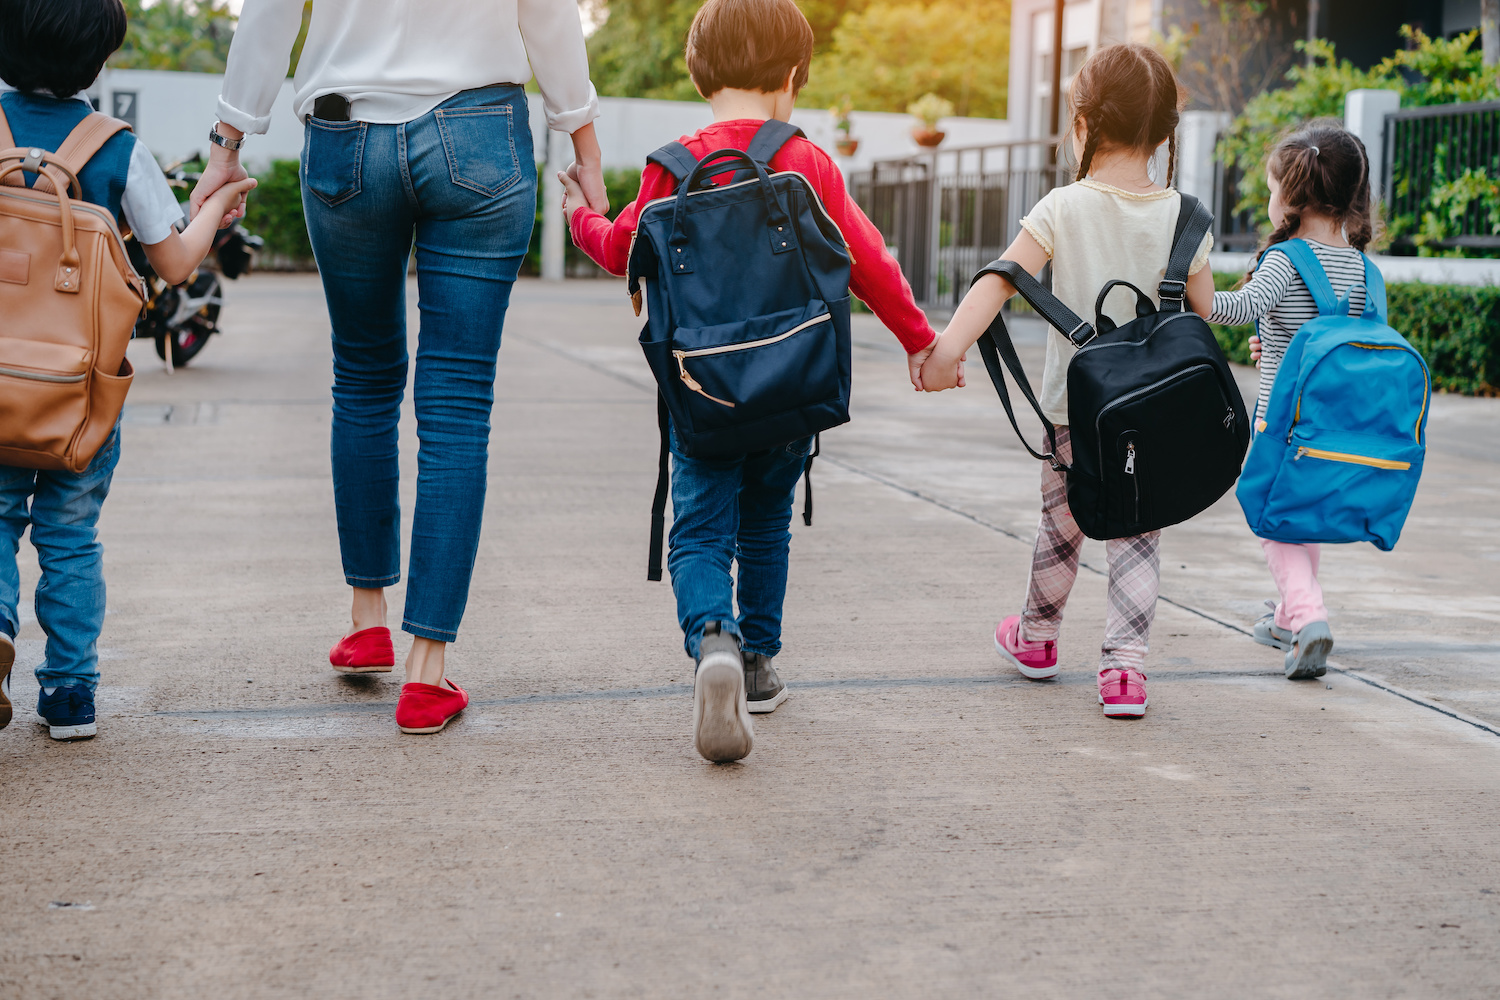 Like everything else that has been upended by the COVID-19 pandemic, the back-to-school shopping season is mired in uncertainty now that the status of school openings across the U.S. is up in the air.